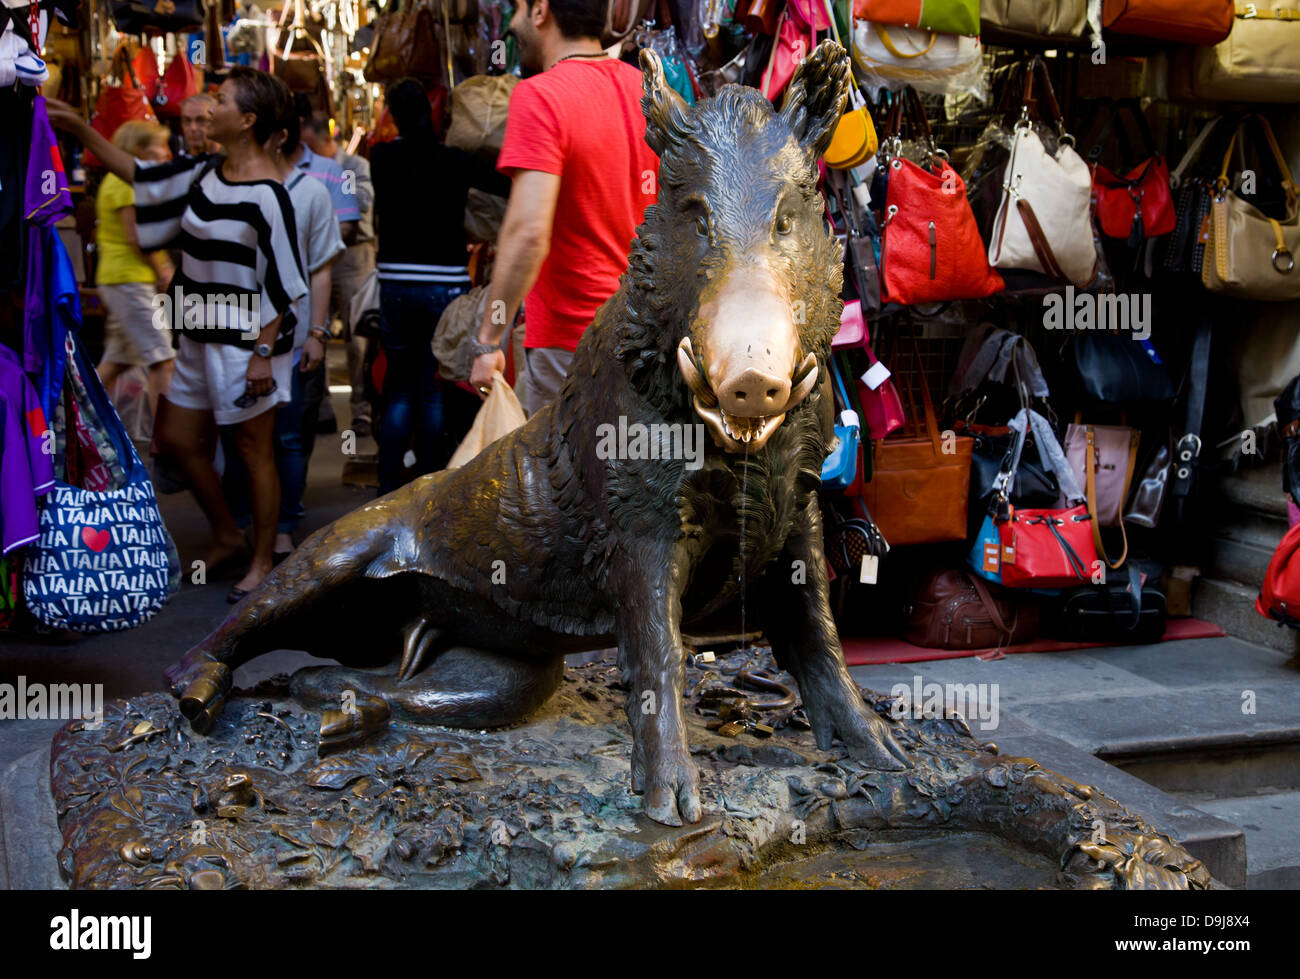 'Il Porcellino' wild boar statue at the Mercato Nuovo in Florence. Rub his snout for good luck - Stock Image